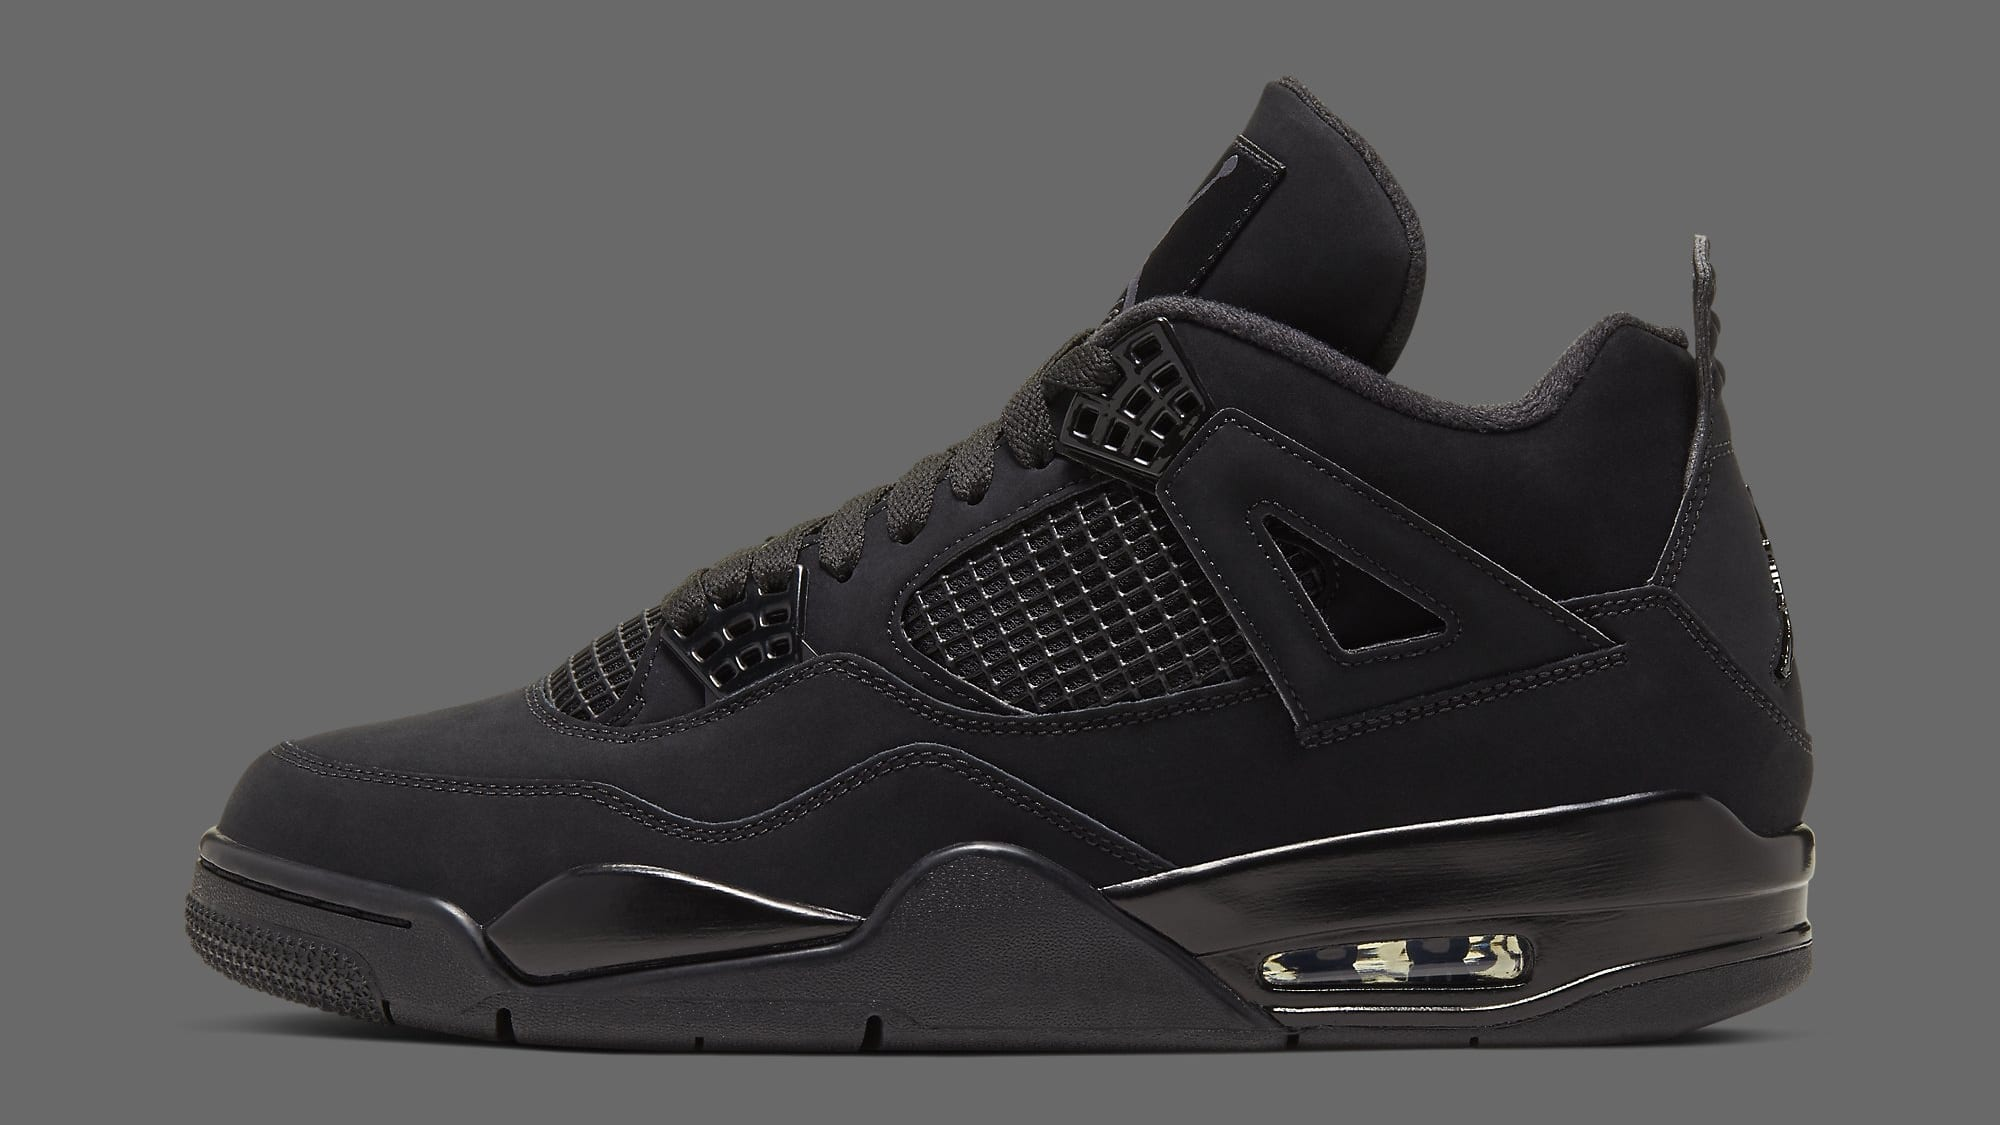 Best Look Yet at the Air Jordan 4 Retro 'Black Cat'